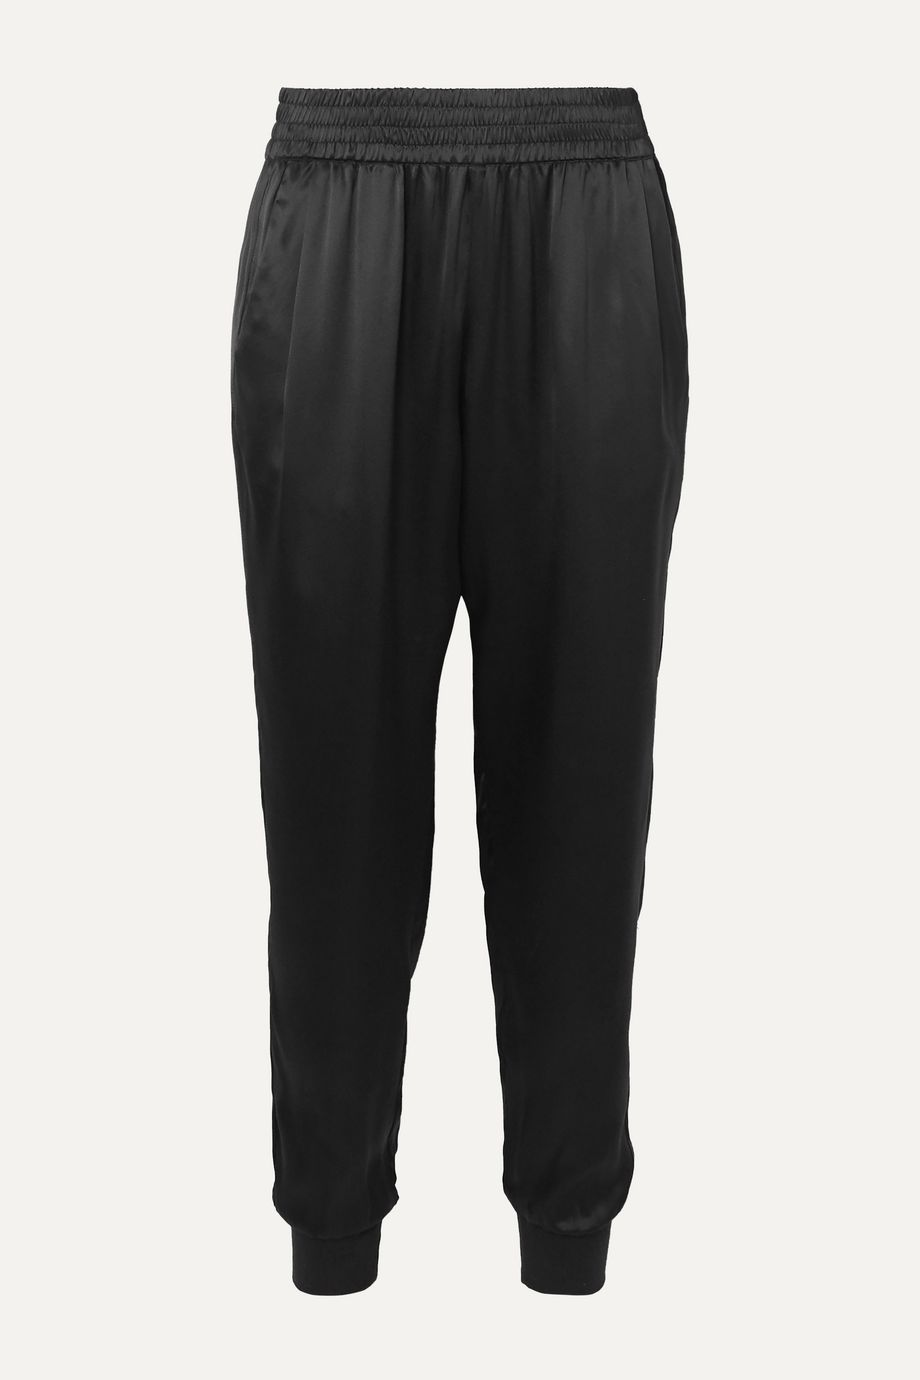 Cami NYC The Sadie silk-charmeuse tapered track pants